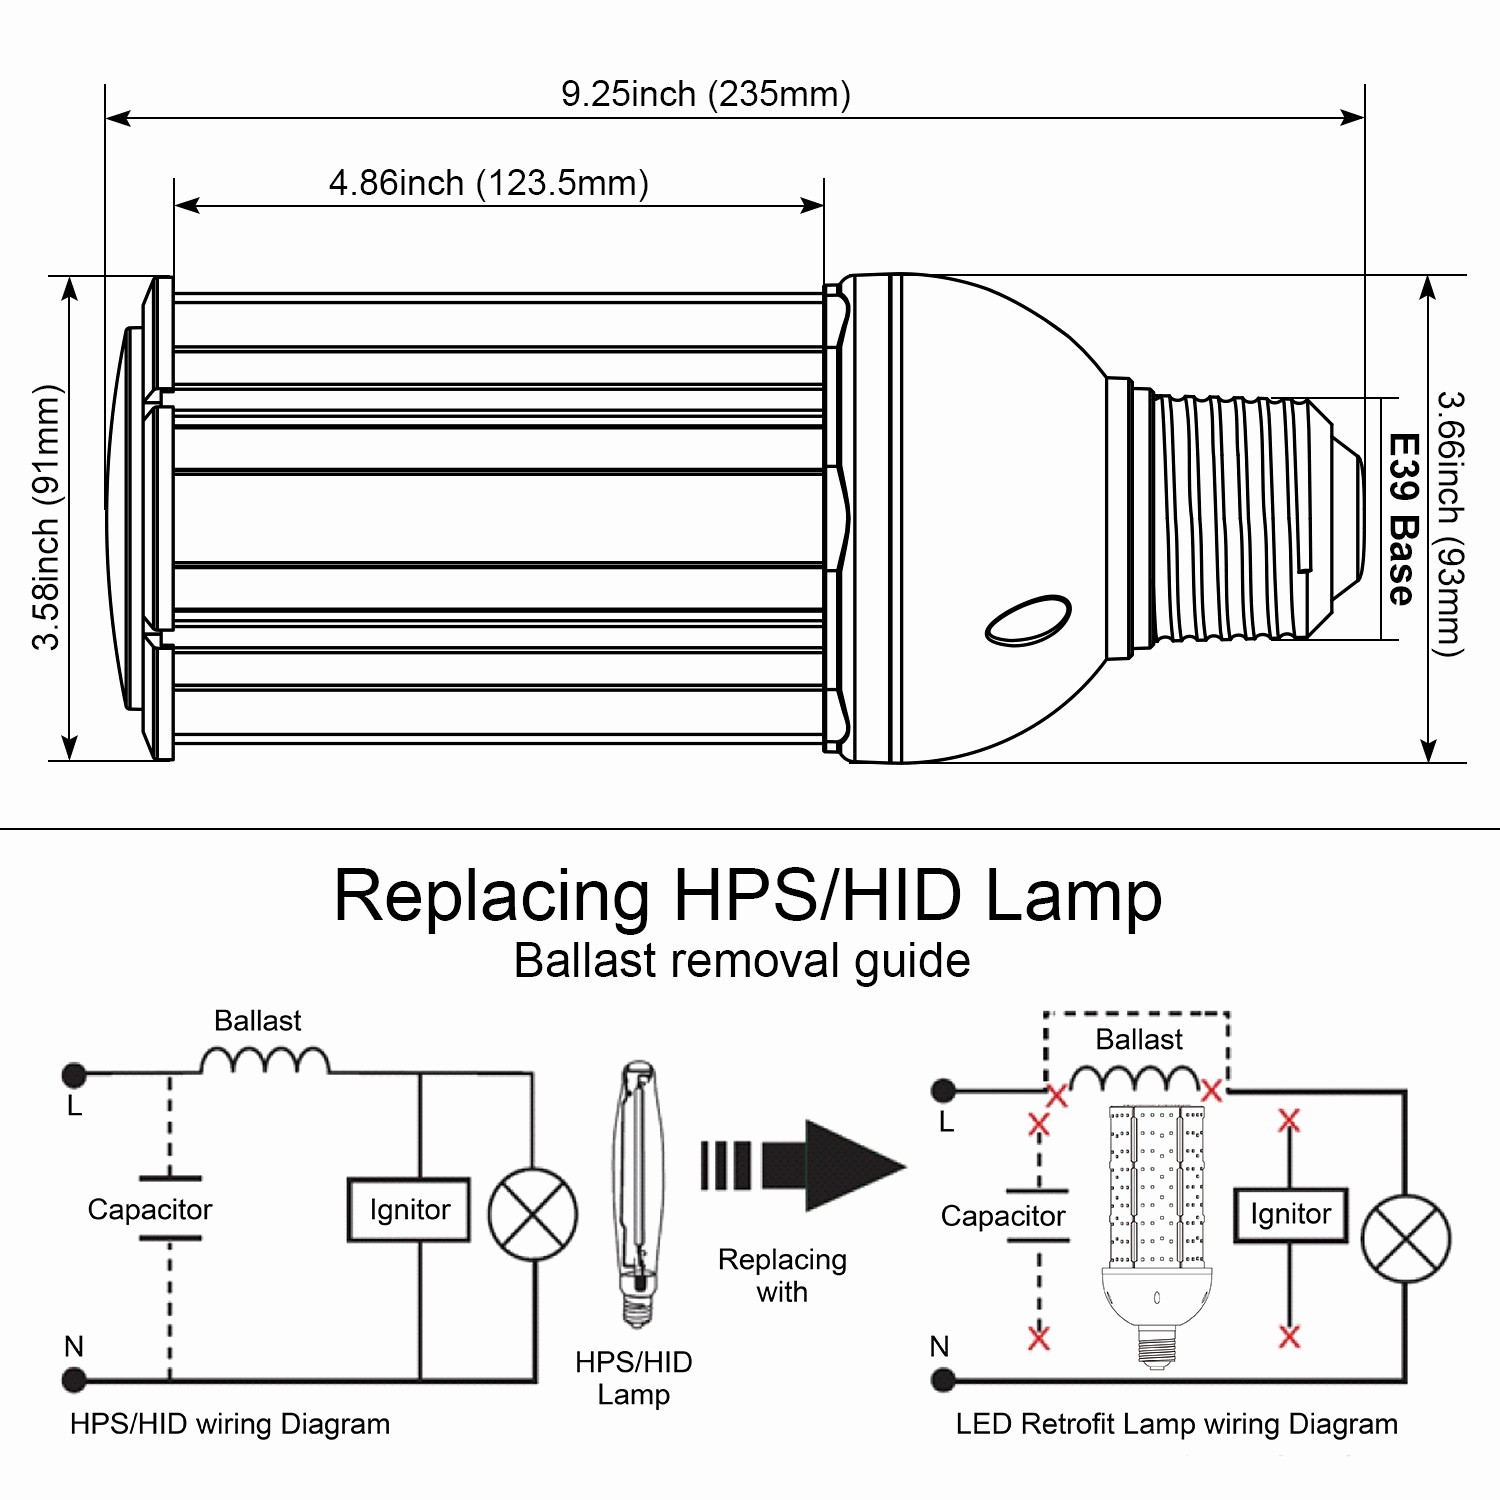 Wiring Hps Mh Free Download Led Grow Light Diagram 150w Example Electrical Circuit U2022 Ballast At